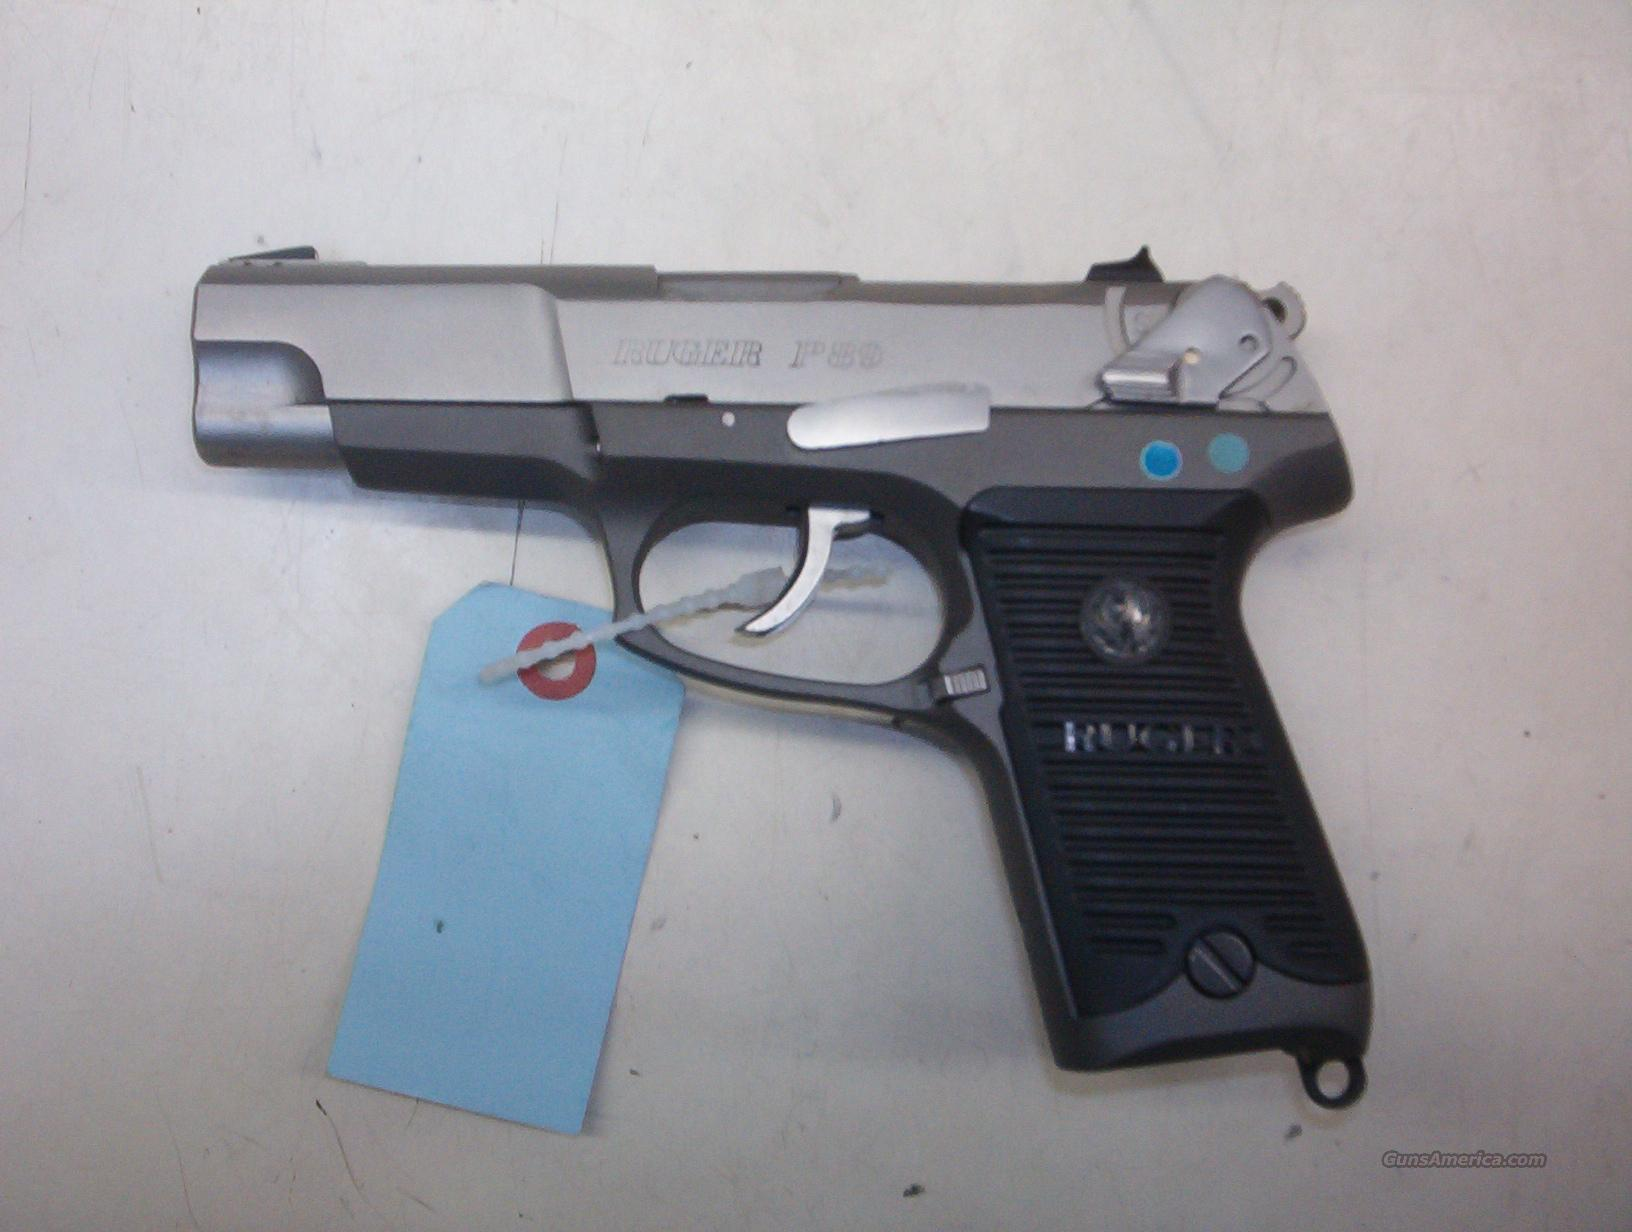 RUGER P89 STAINLESS 9MM WITH CONVERTIBLE 7.65 LUGER BARREL MADE ONLY ONE YEAR  Guns > Pistols > Ruger Semi-Auto Pistols > P-Series